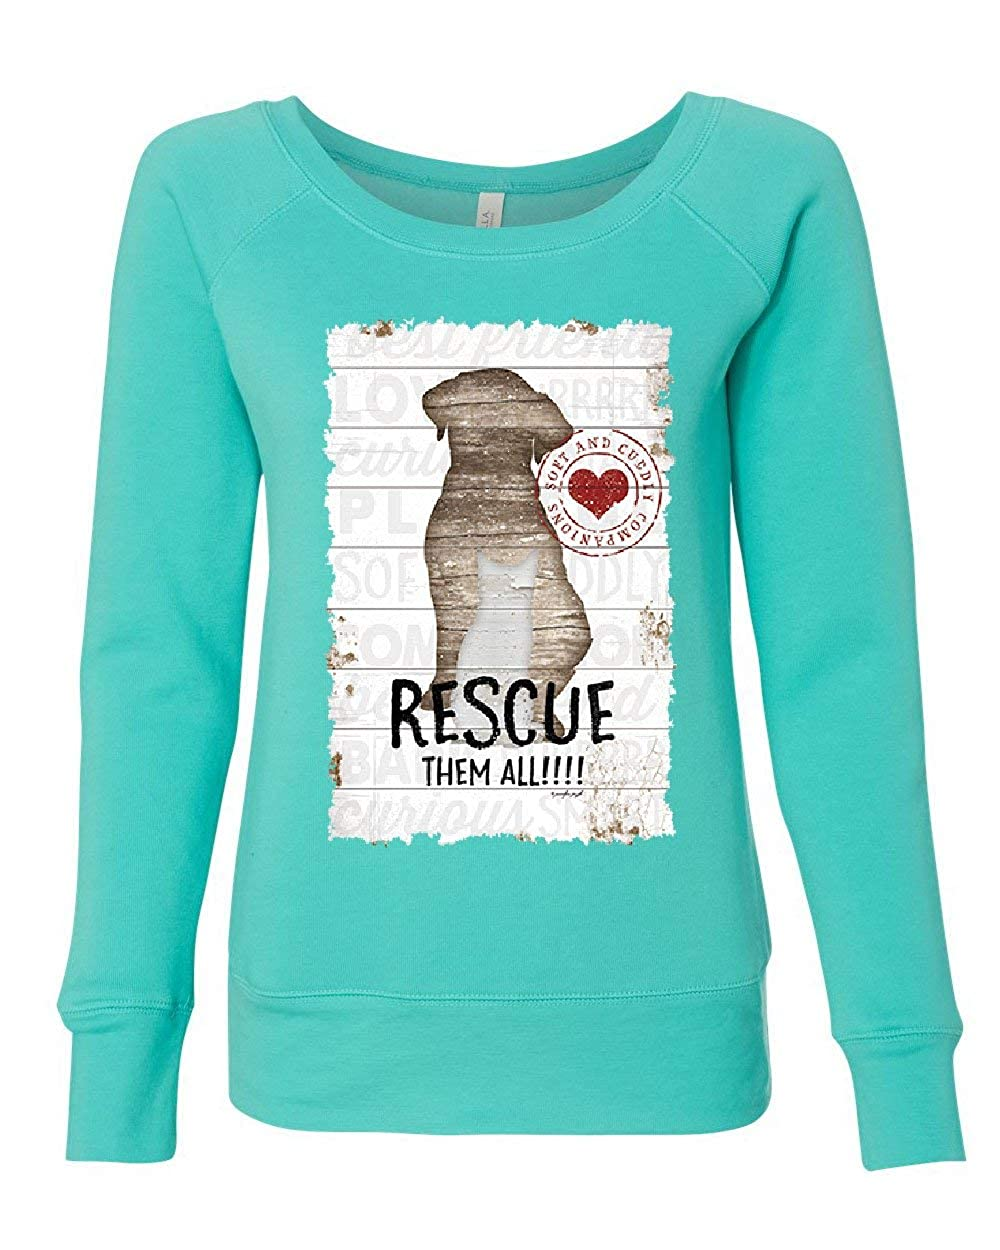 Rescue Them All Womens Sweatshirt Pet Dog Cat Shelter Animal Rescue Paw